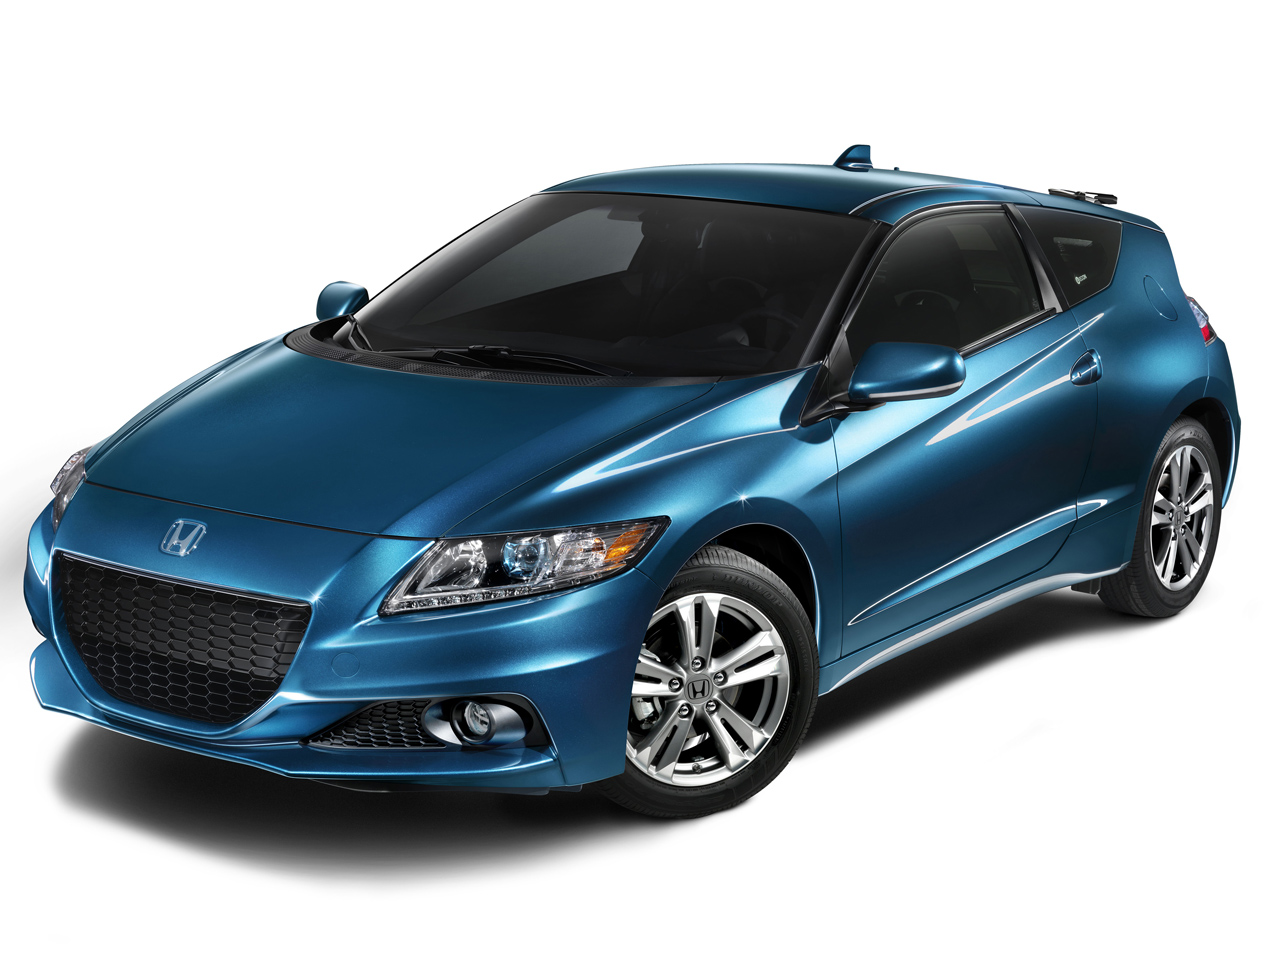 updated 2013 honda cr z priced at 19 975 autoblog. Black Bedroom Furniture Sets. Home Design Ideas